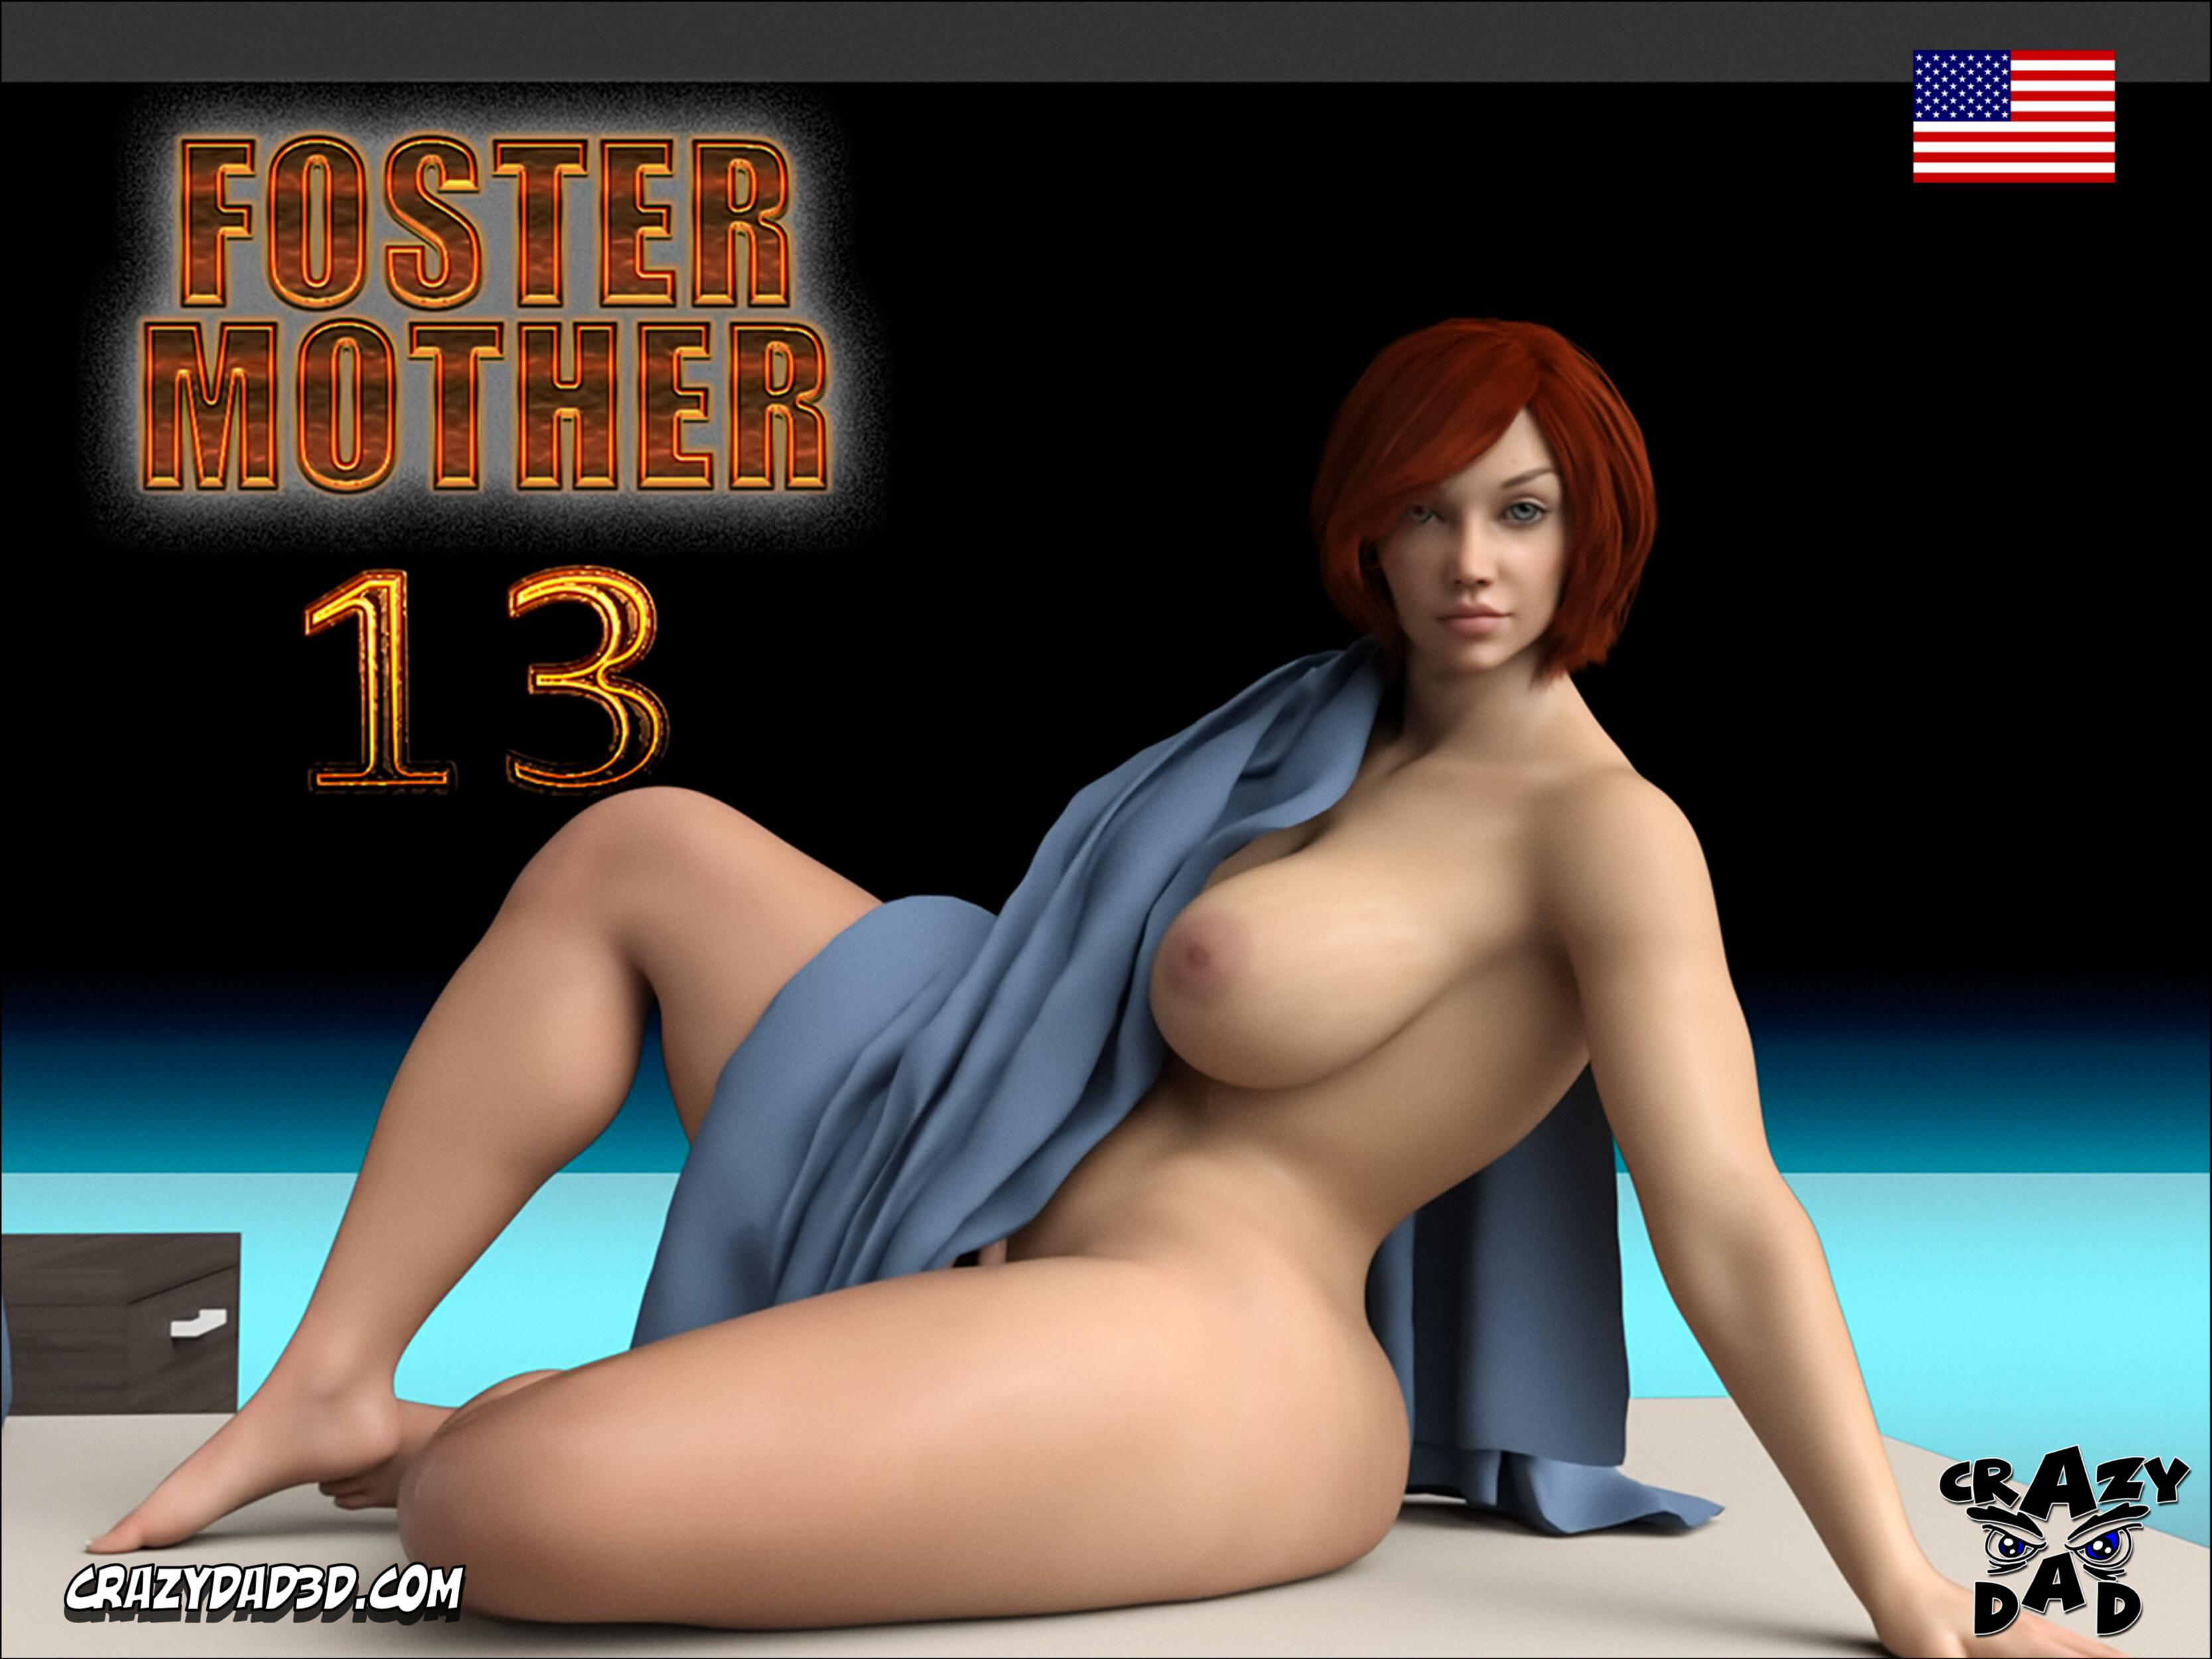 Crazy Dad – Foster Mother 13